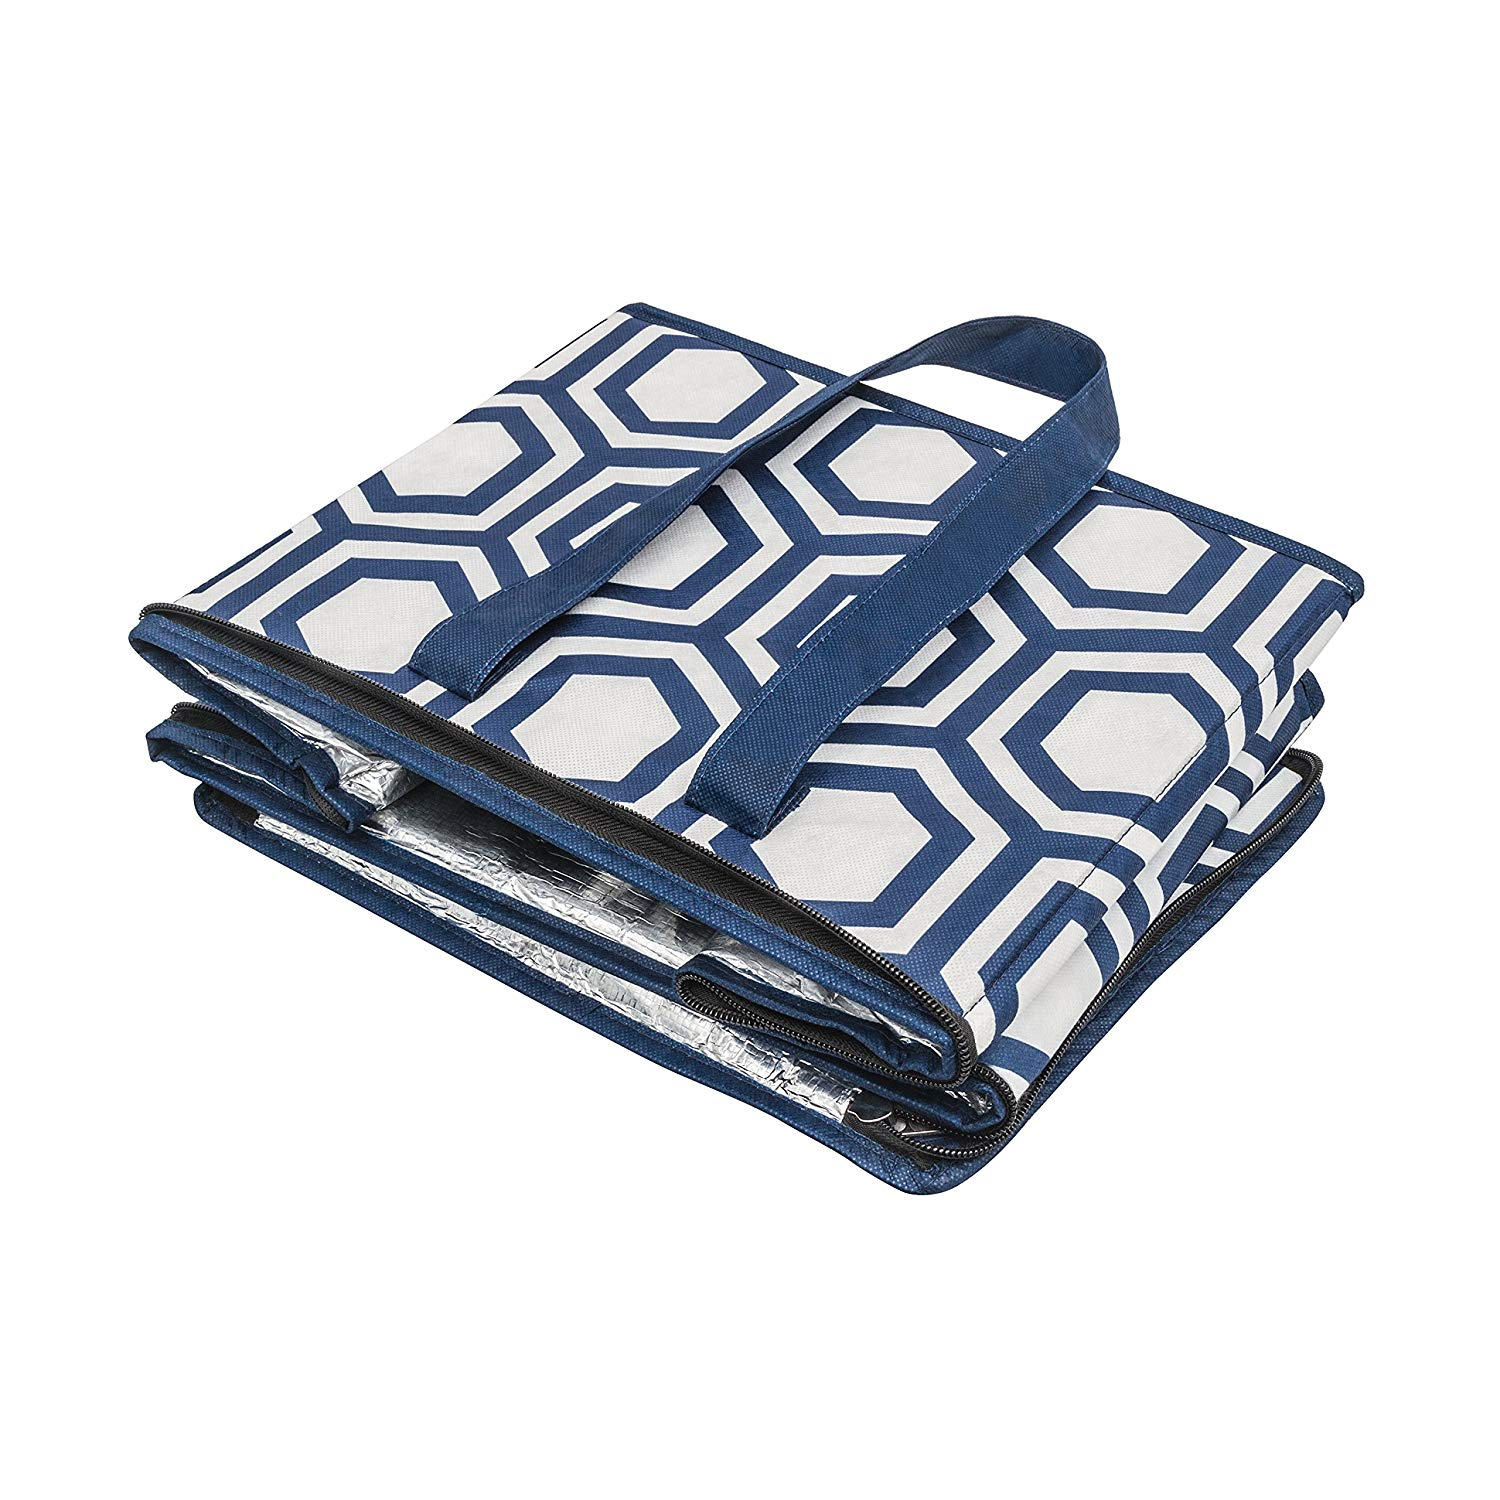 Made of Recycled  Plastic Large Collapsible Insulated zippered Coolers bags with Reinforced Bottom